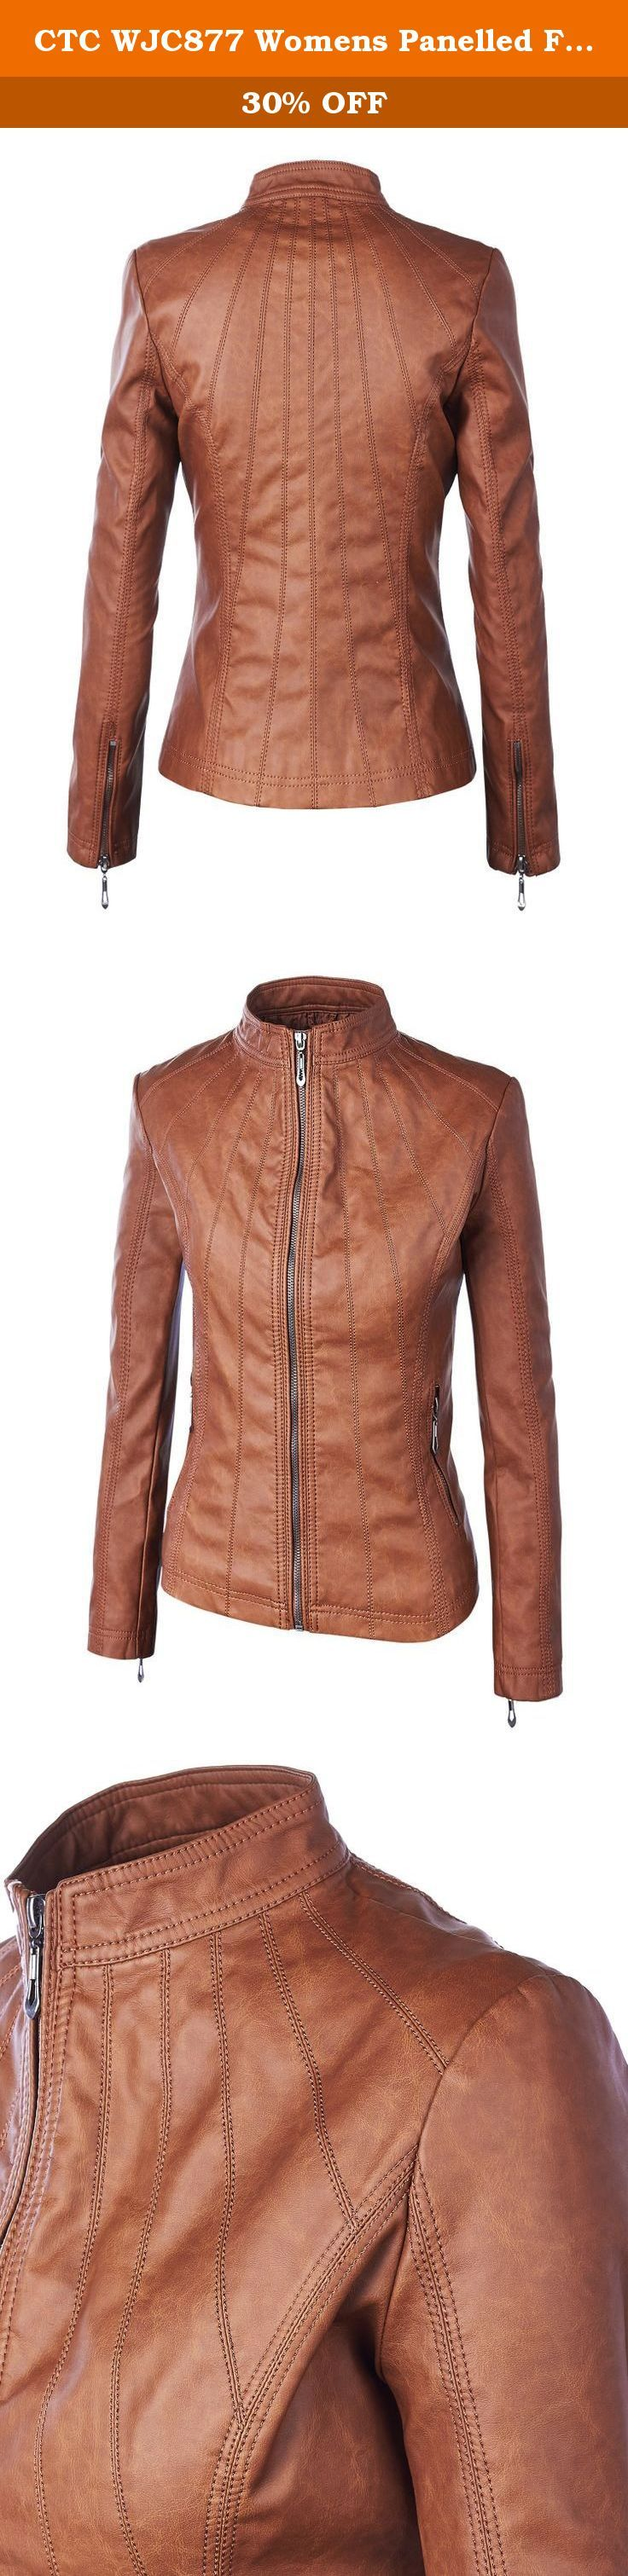 CTC WJC877 Womens Panelled Faux Leather Moto Jacket L CAMEL. Womens Faux Leather Zip Up Moto Biker Jacket with Stitching Detail.